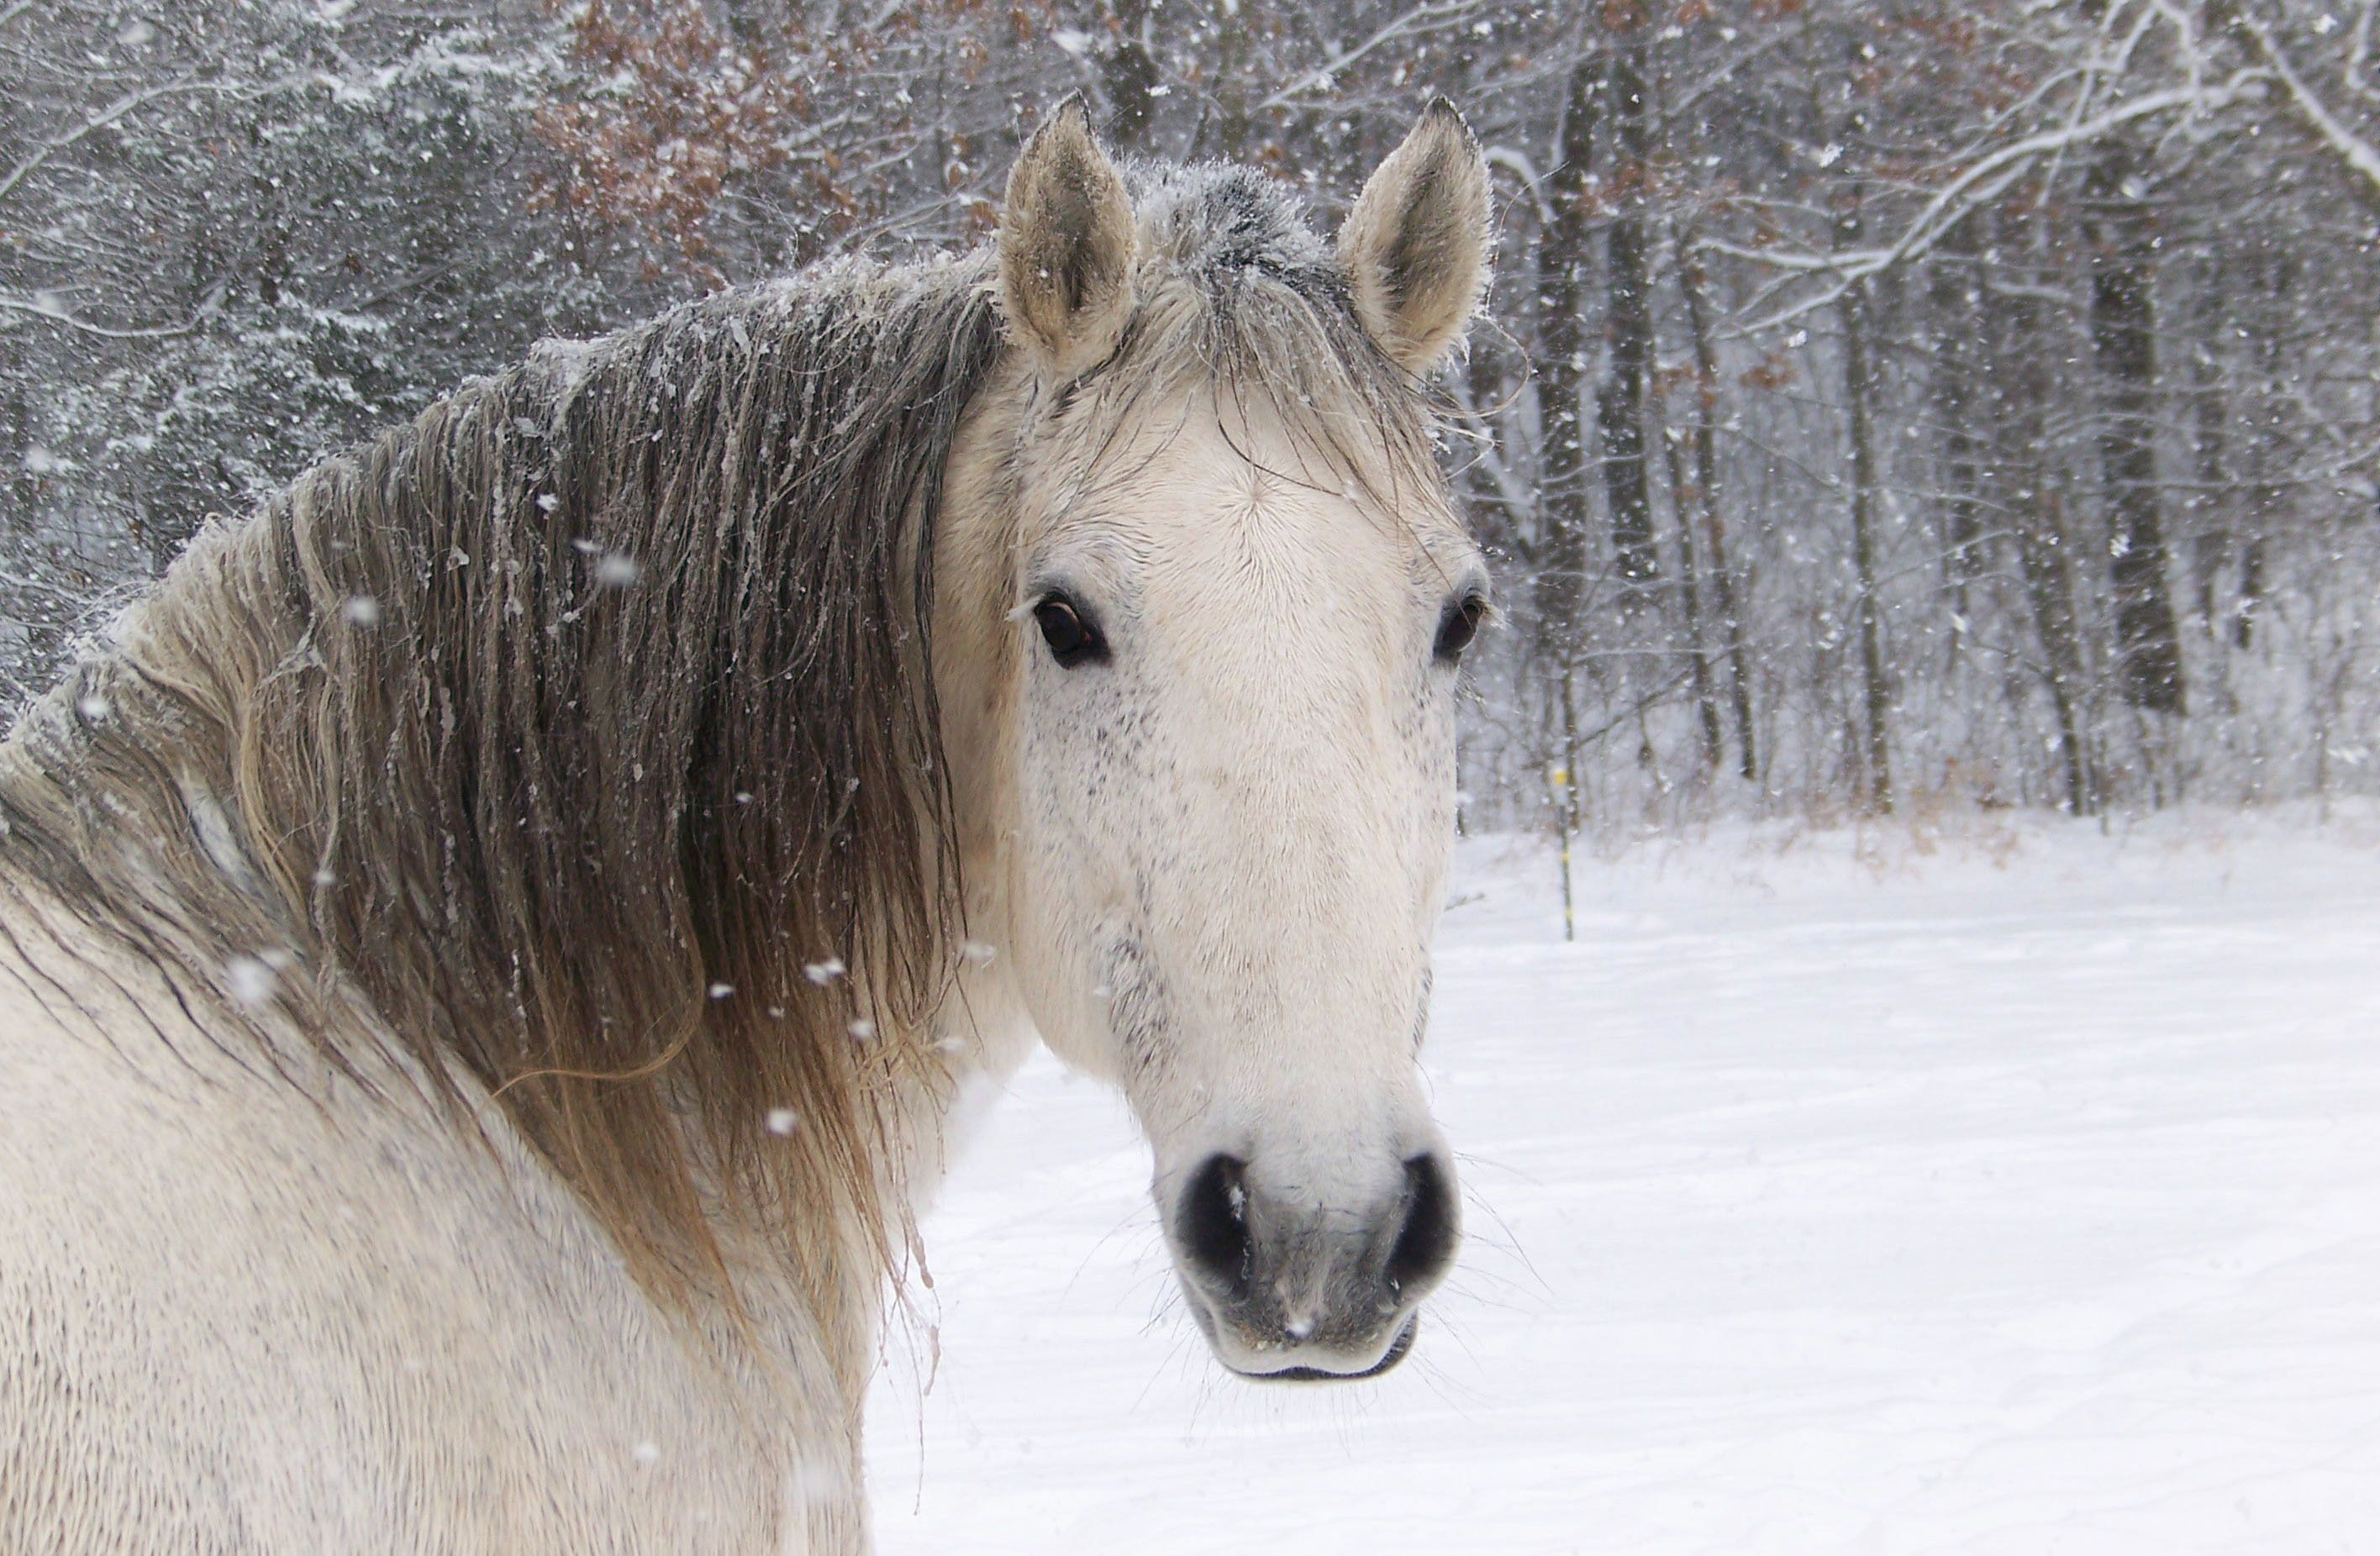 Top Wallpaper Horse Winter - 04e1852b138f23409986066fceedd0ef  Graphic_394274.jpg